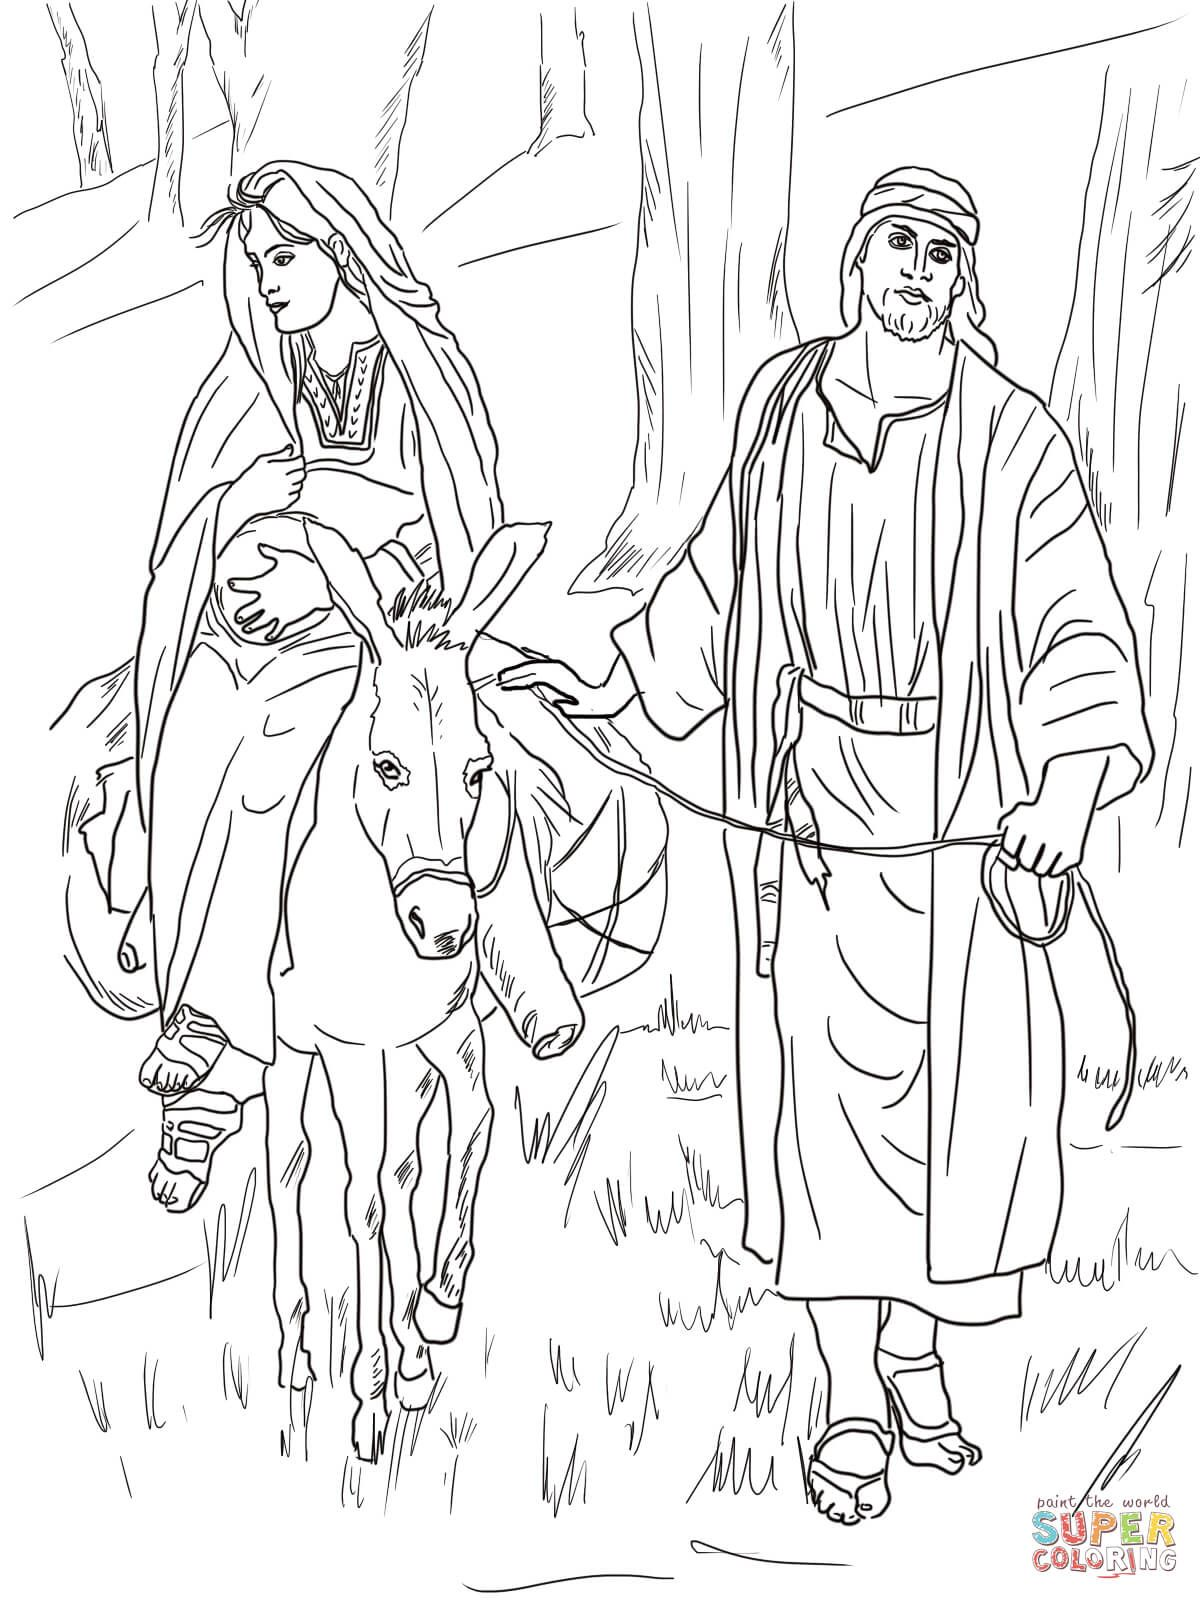 Pin Von R Mare Auf Digi X Mas Coloring Pages Nativity Coloring